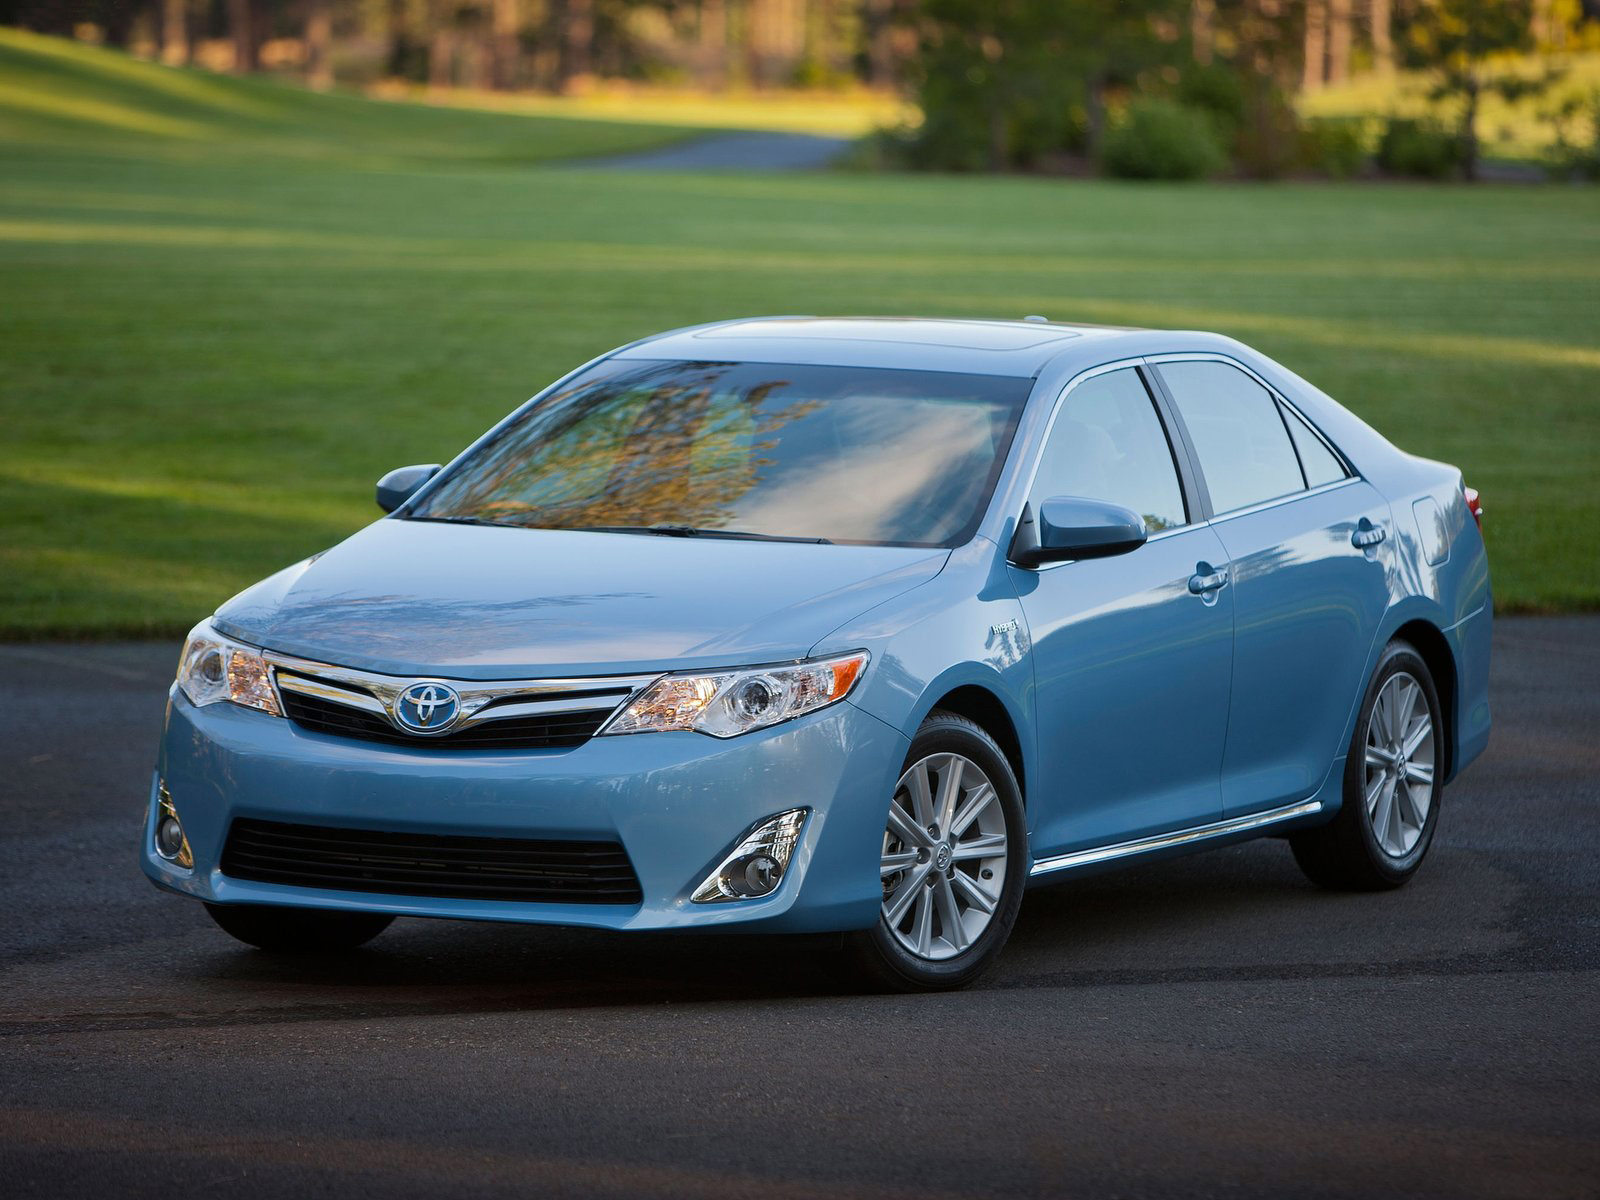 2012 TOYOTA Camry Hybrid Car Insurance Information